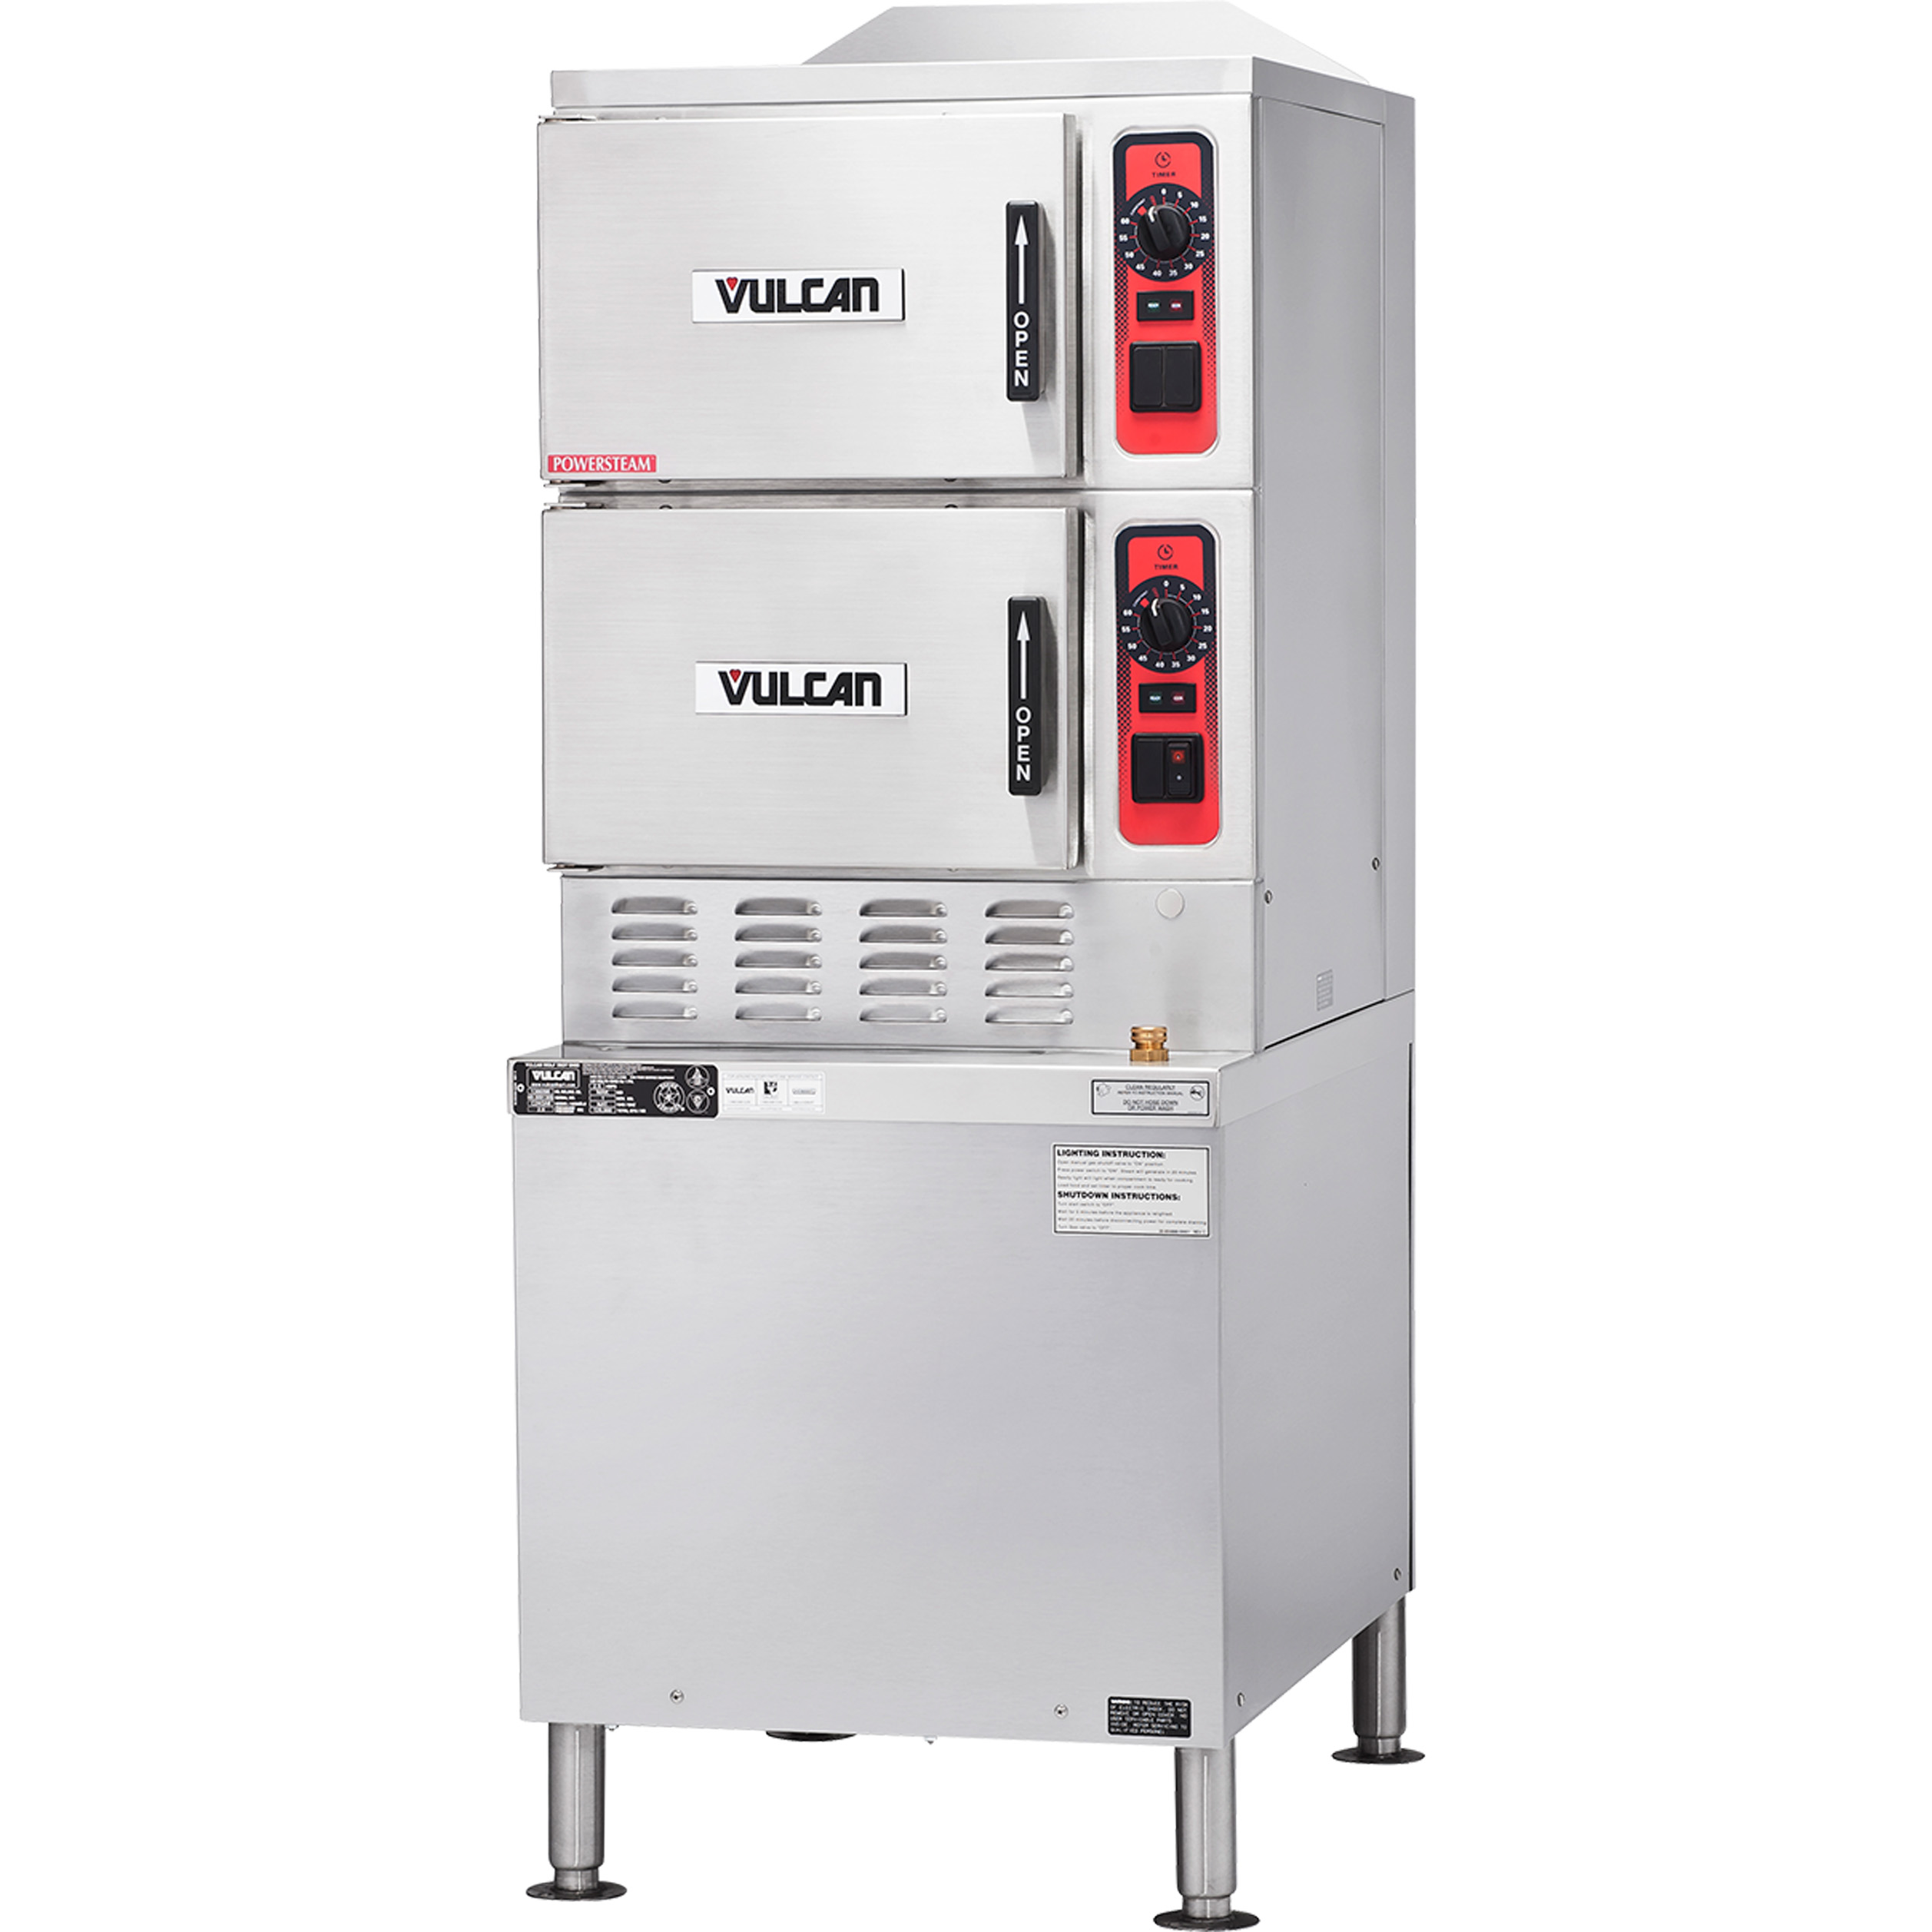 Vulcan C24GA6 steamer, convection, gas, floor model